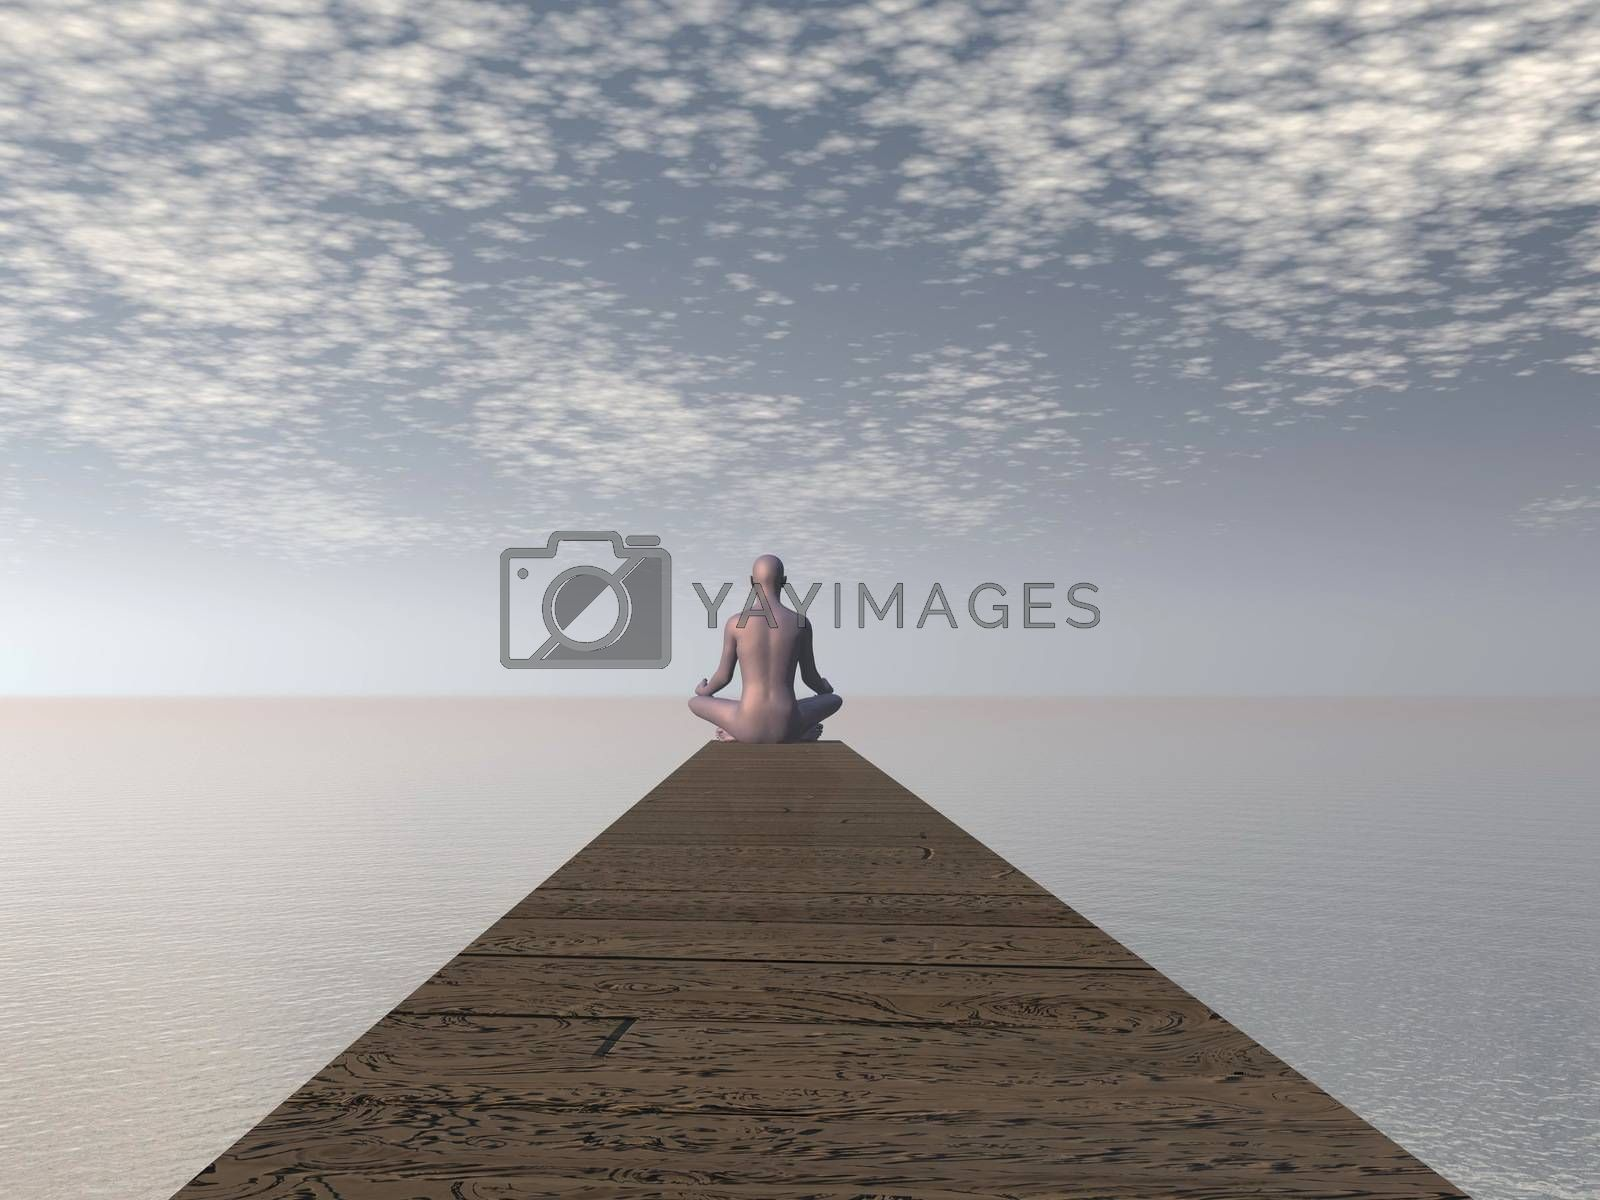 Royalty free image of Meditation - 3D render by Elenaphotos21